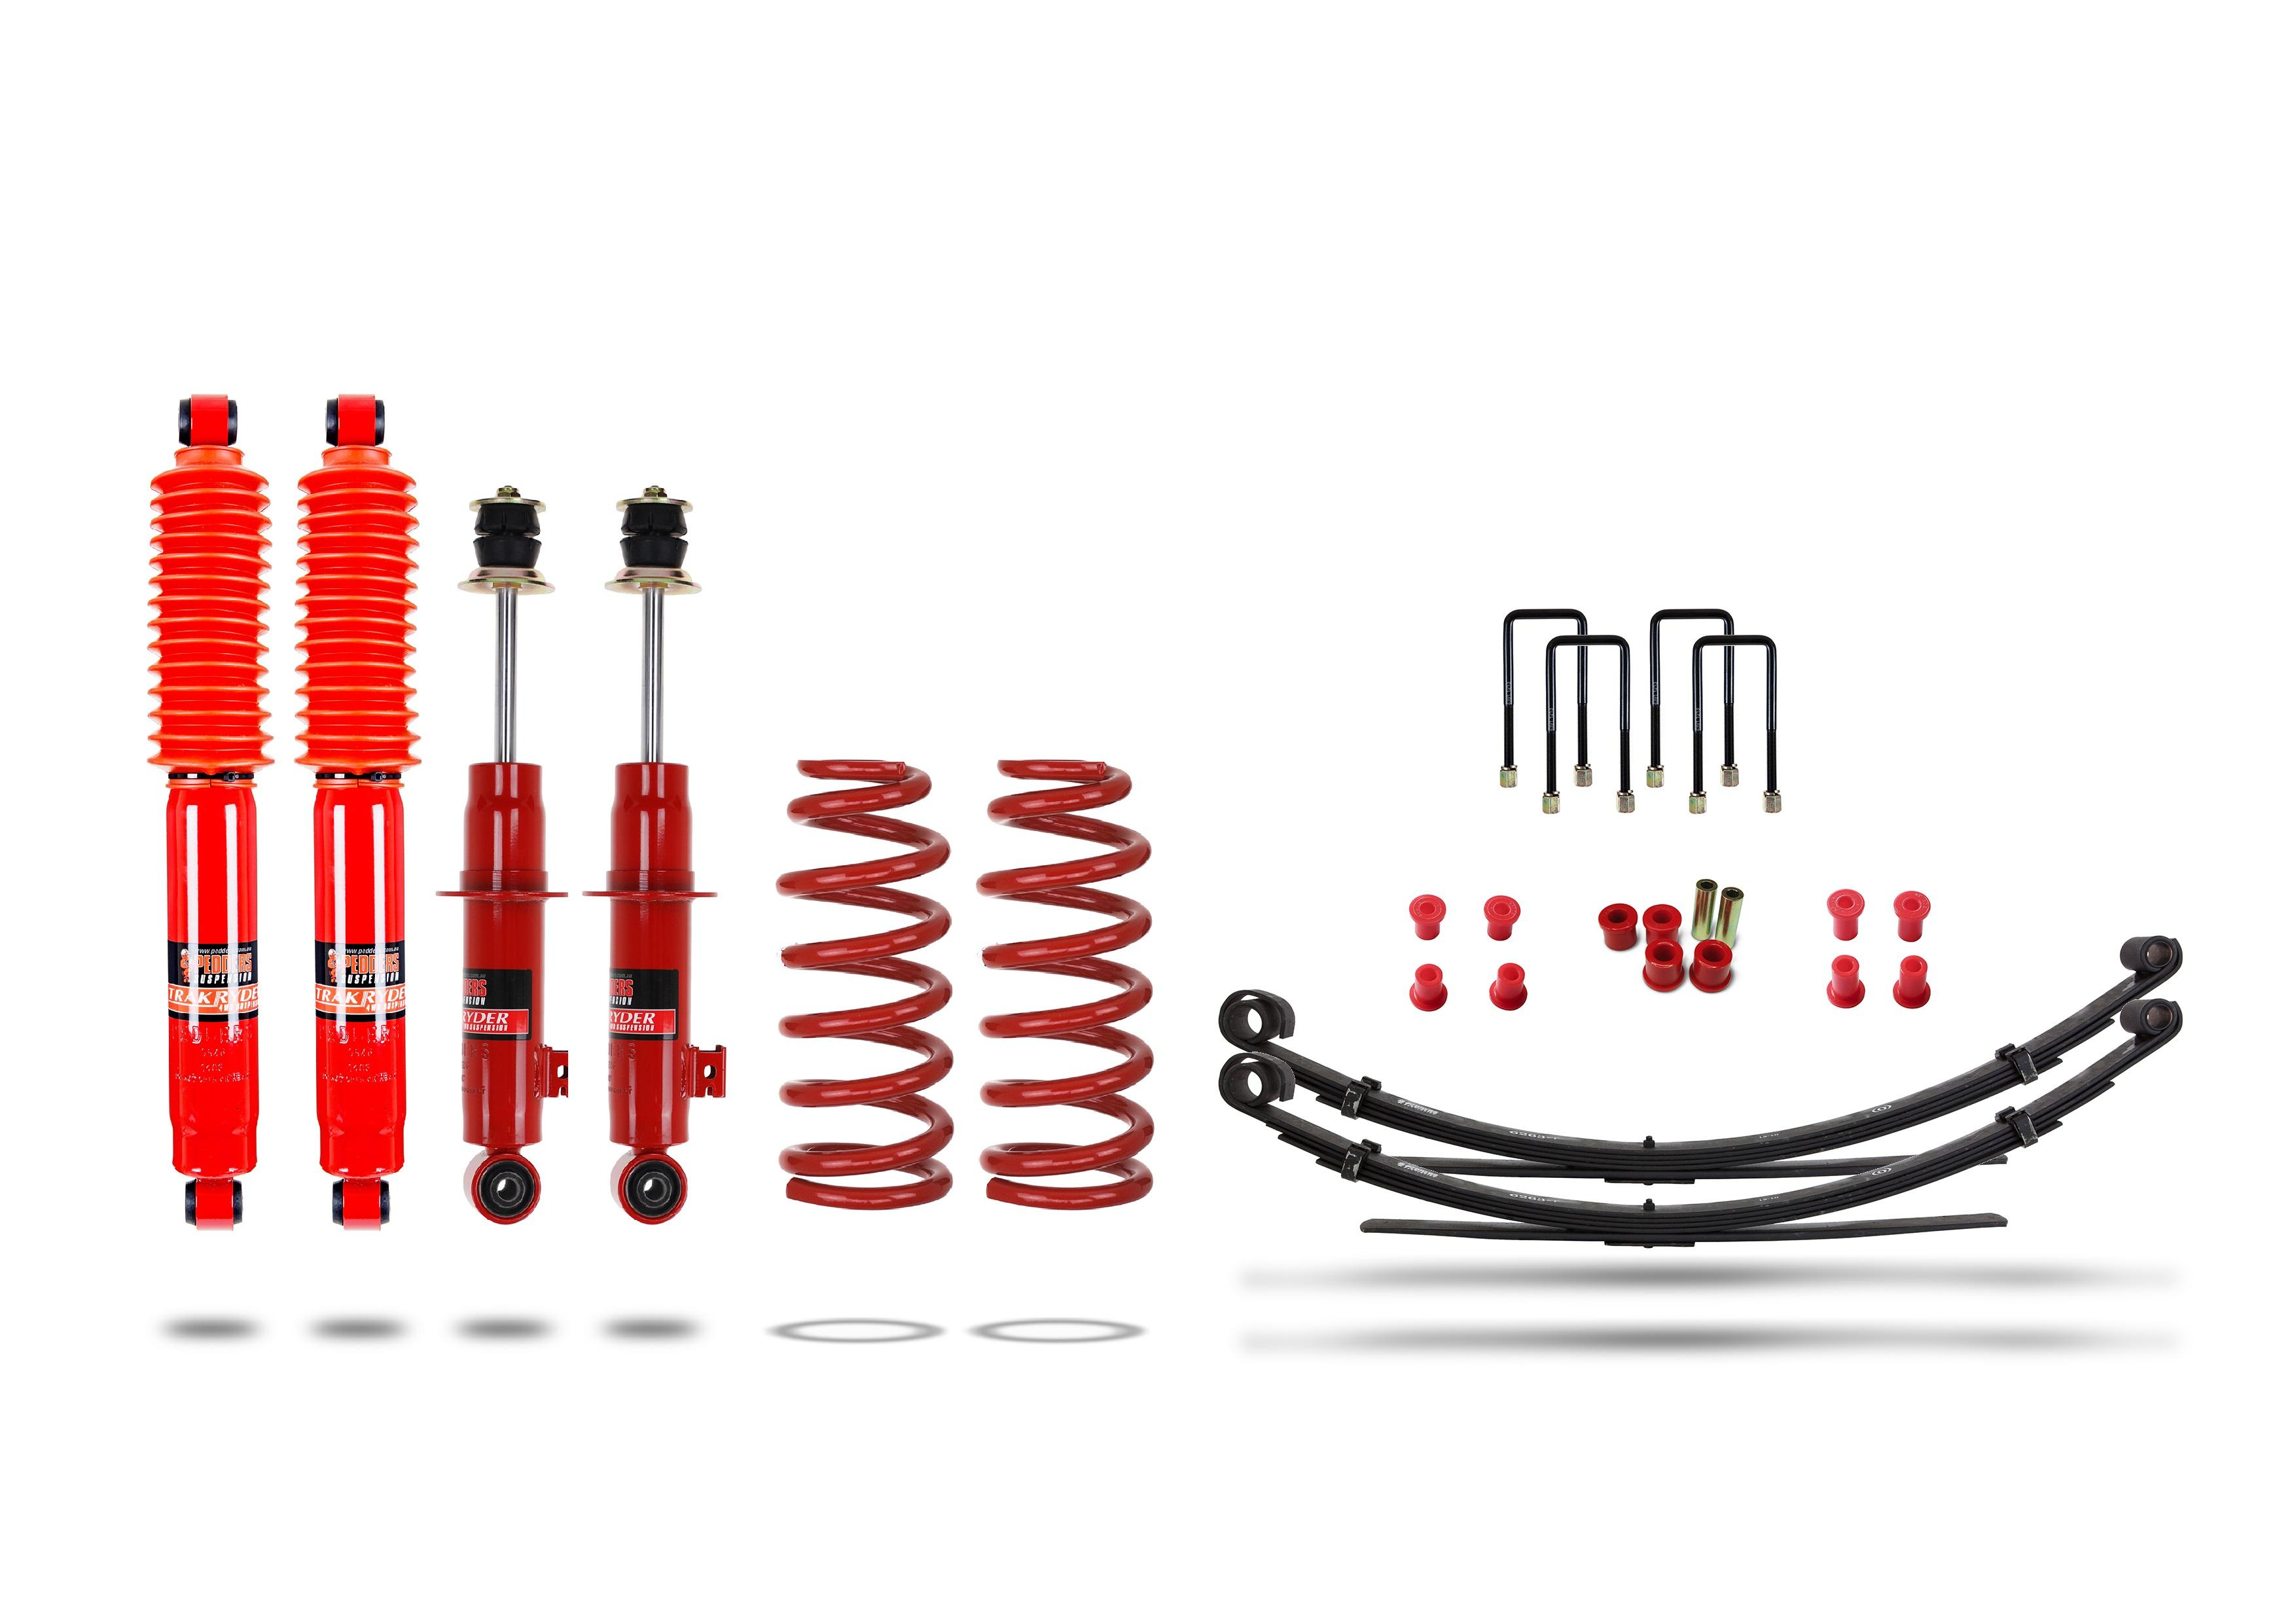 Outback 4x4 Kit 915019